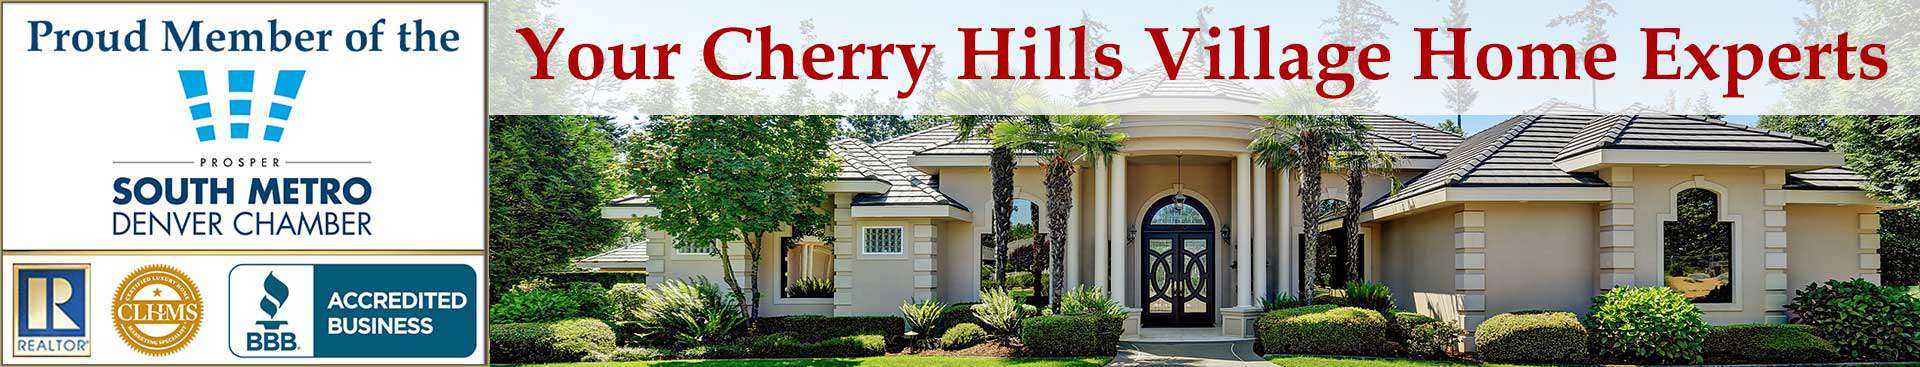 Cherry Hills Village CO Organizational Banner